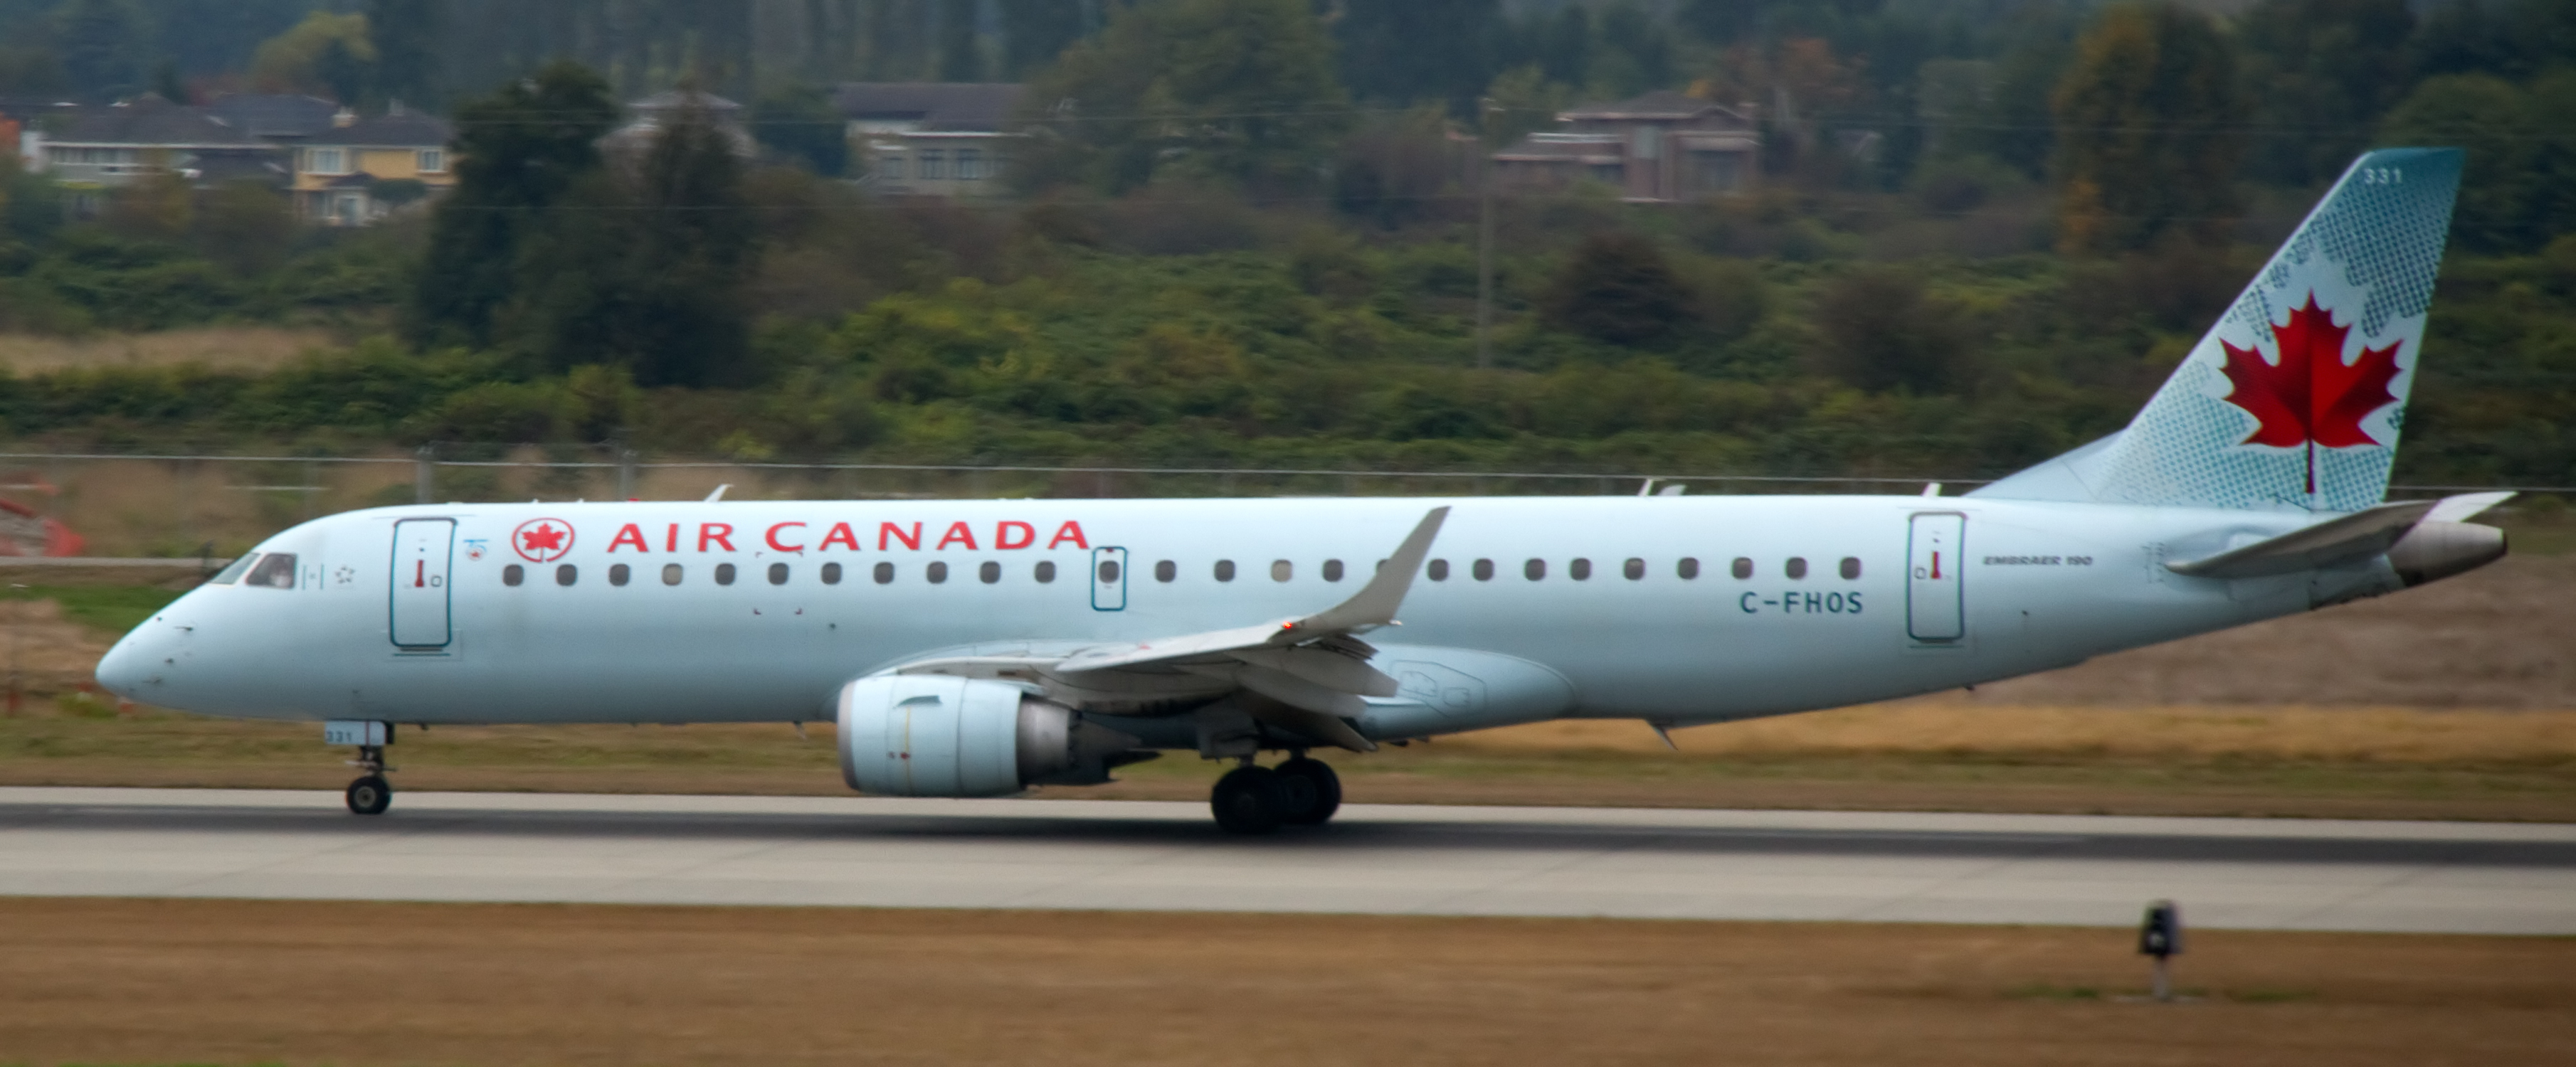 air canada 797 essay Air canada's flight 797 was operating from dallas, texas to toronto, ontario on the afternoon of june 2, 1983 on the flight deck was captain donald cameron and first officer claude ouimet three flight attendants and 41 passengers were also on board the dc-9 that day.